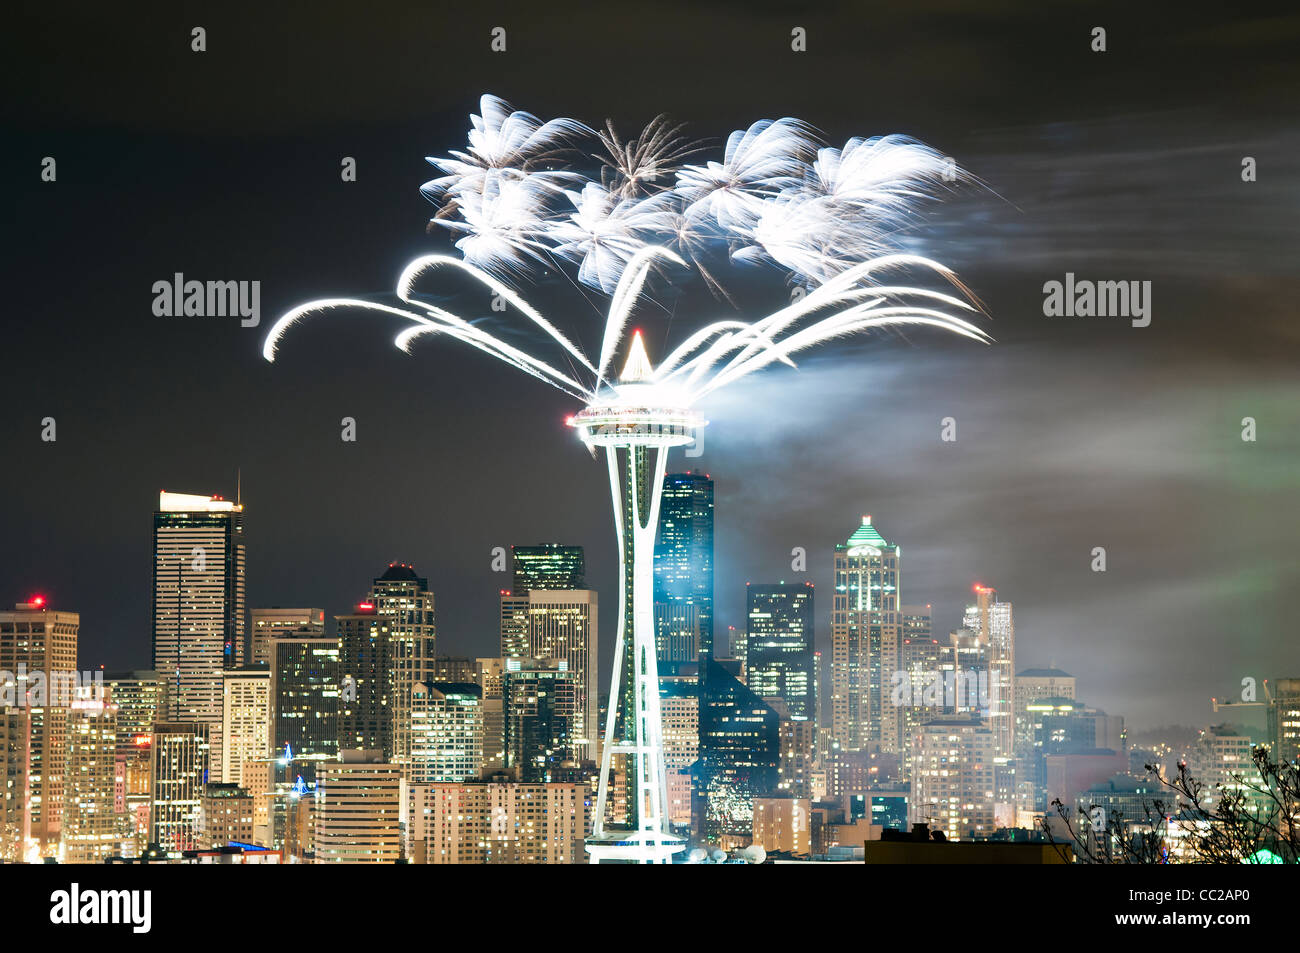 Fireworks' show on New Year's Eve at Space Needle, Seattle, Washington, USA - Stock Image